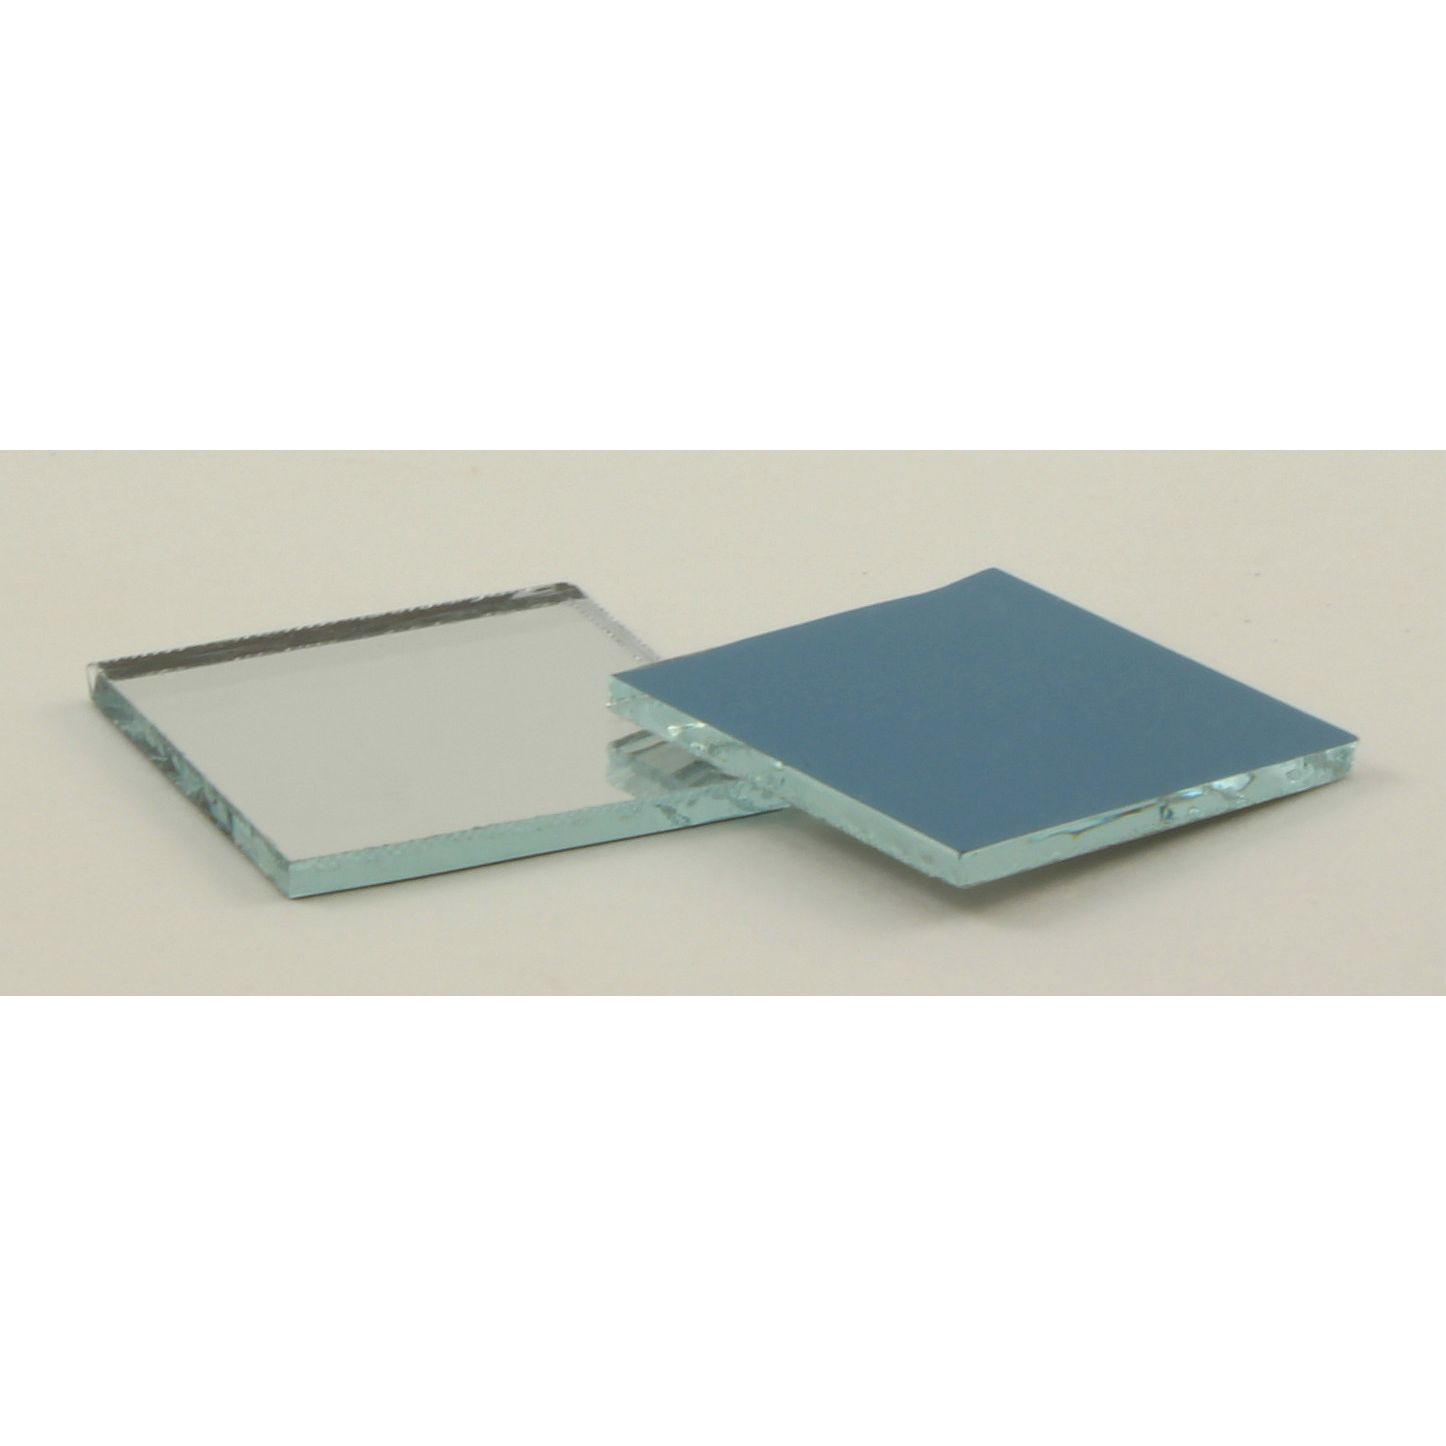 Small Mirror Pieces: 1 Inch Glass Craft Small Square Mirrors 25 Pieces Mosaic